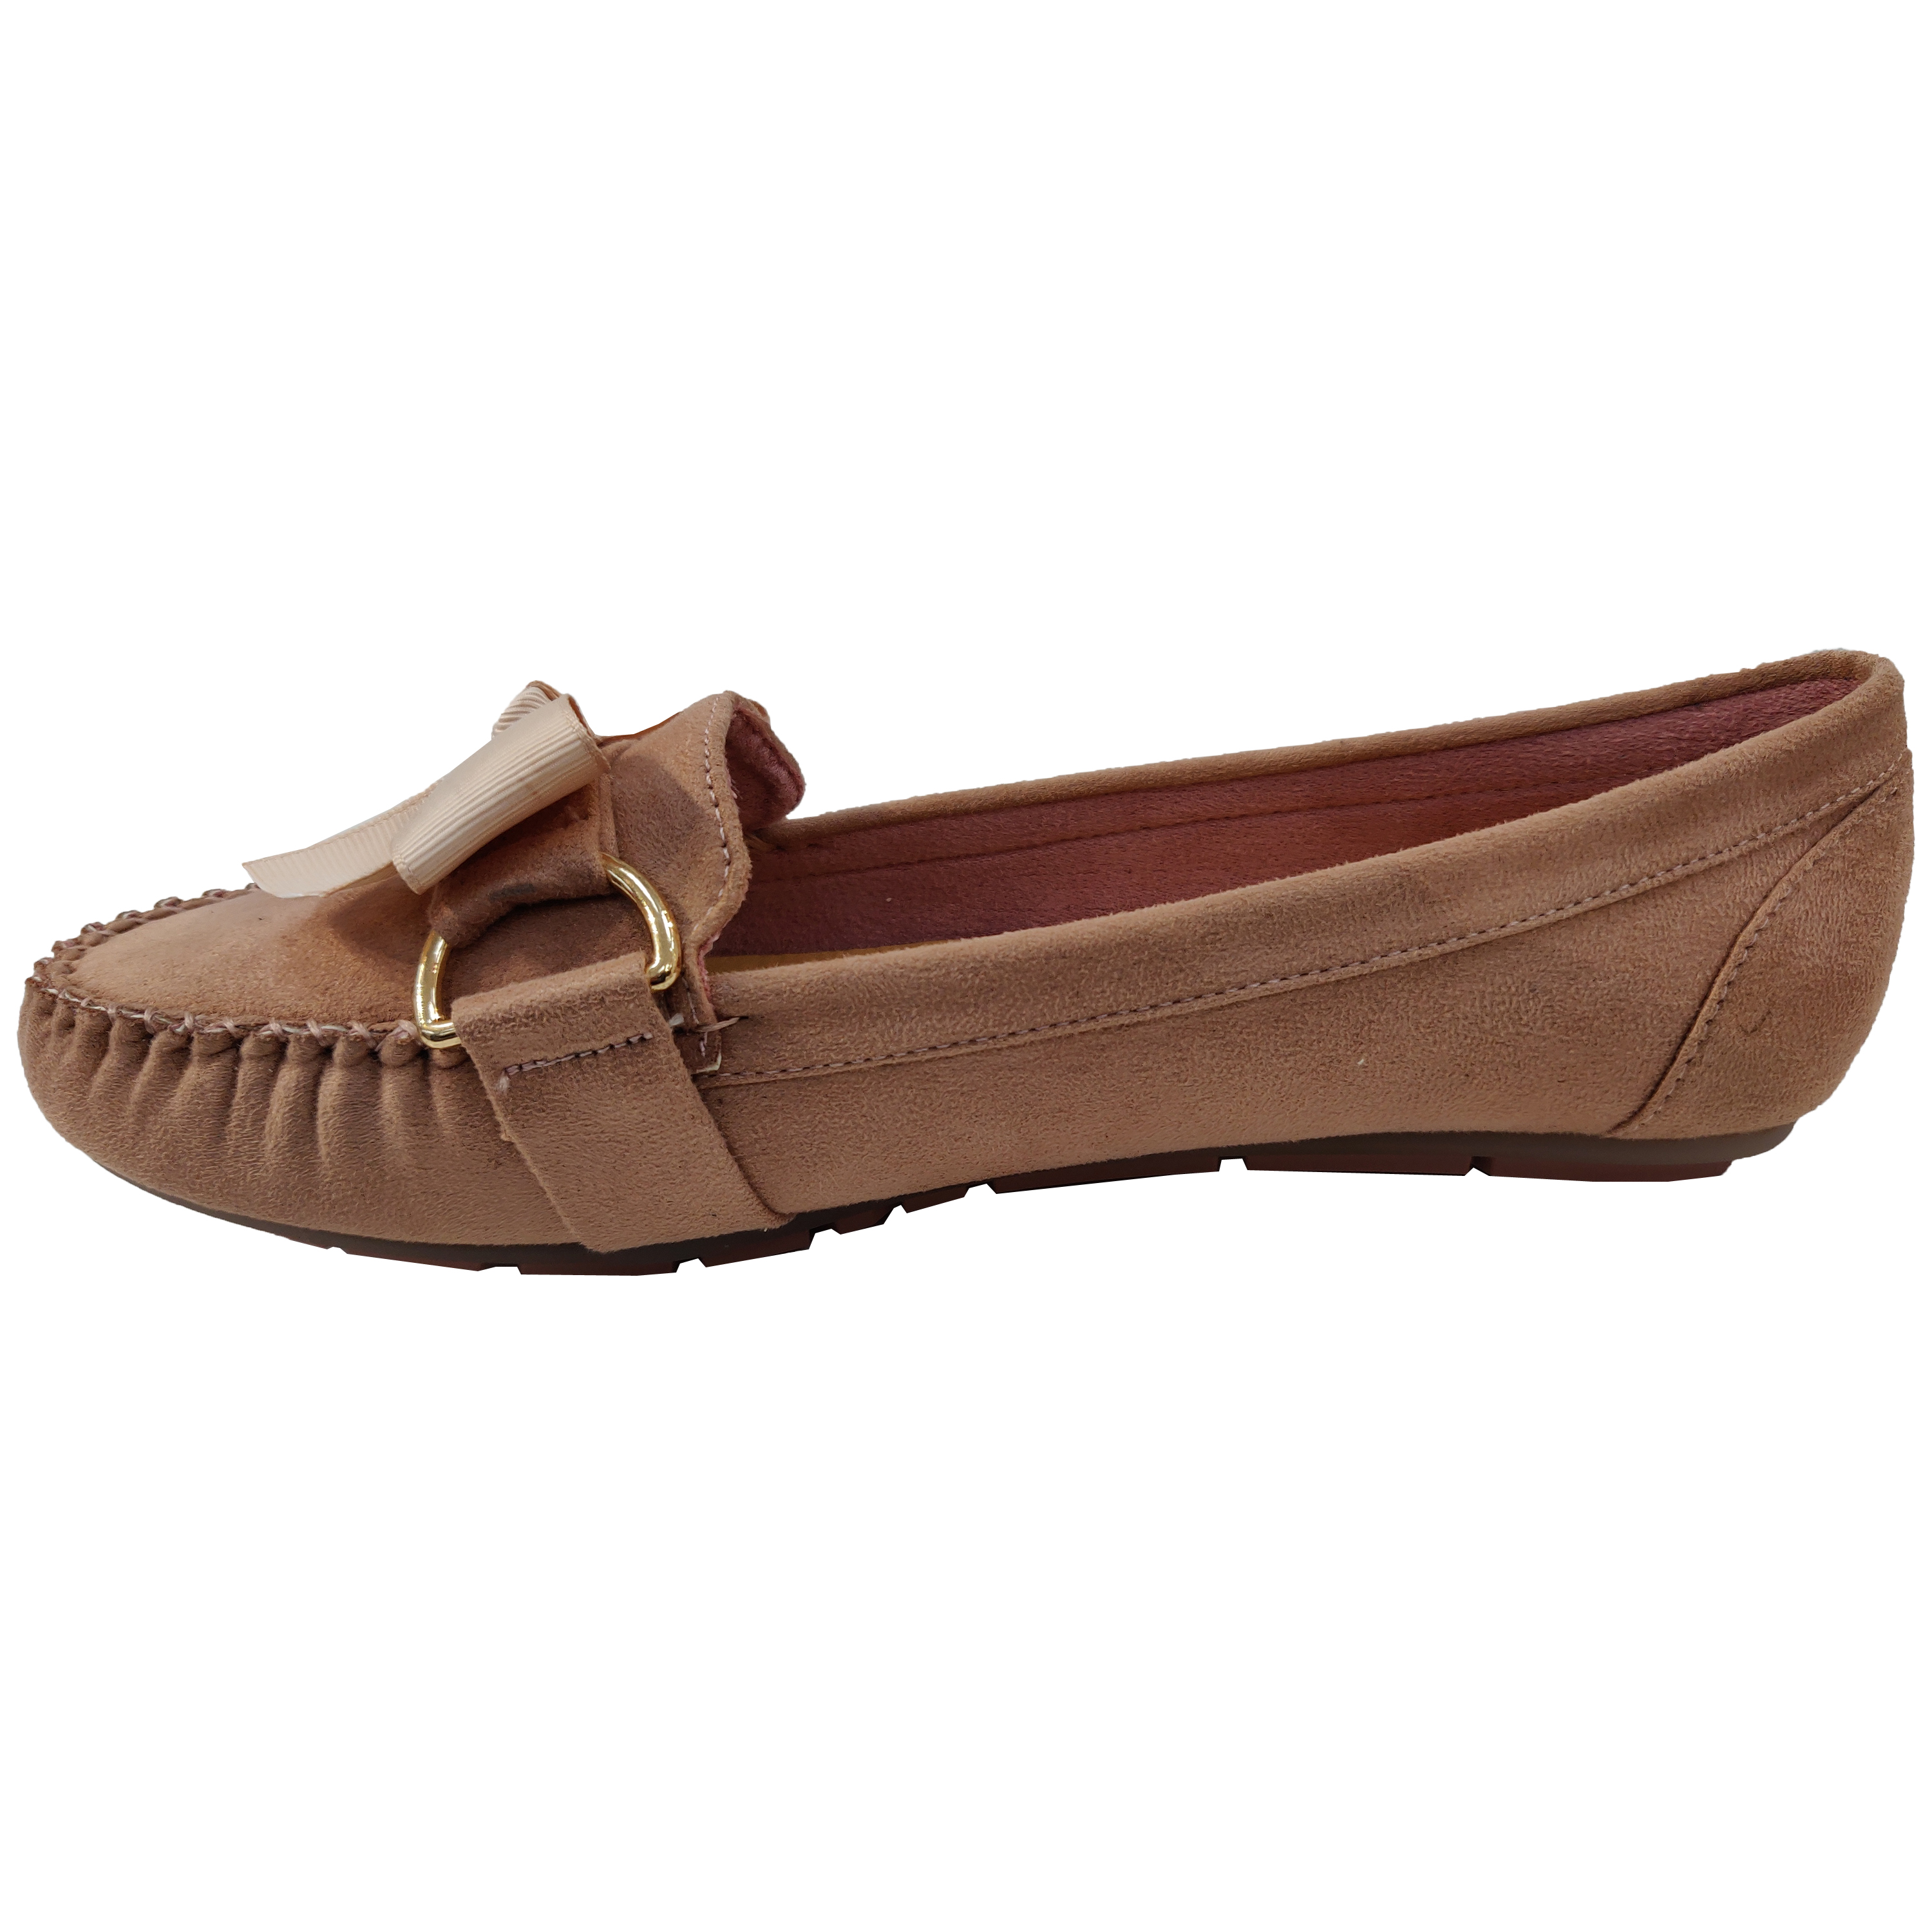 Ladies-Slip-On-Ballerina-Womens-Suede-Look-Pumps-Flat-Bow-Tassels-Shoes-Fashion thumbnail 15